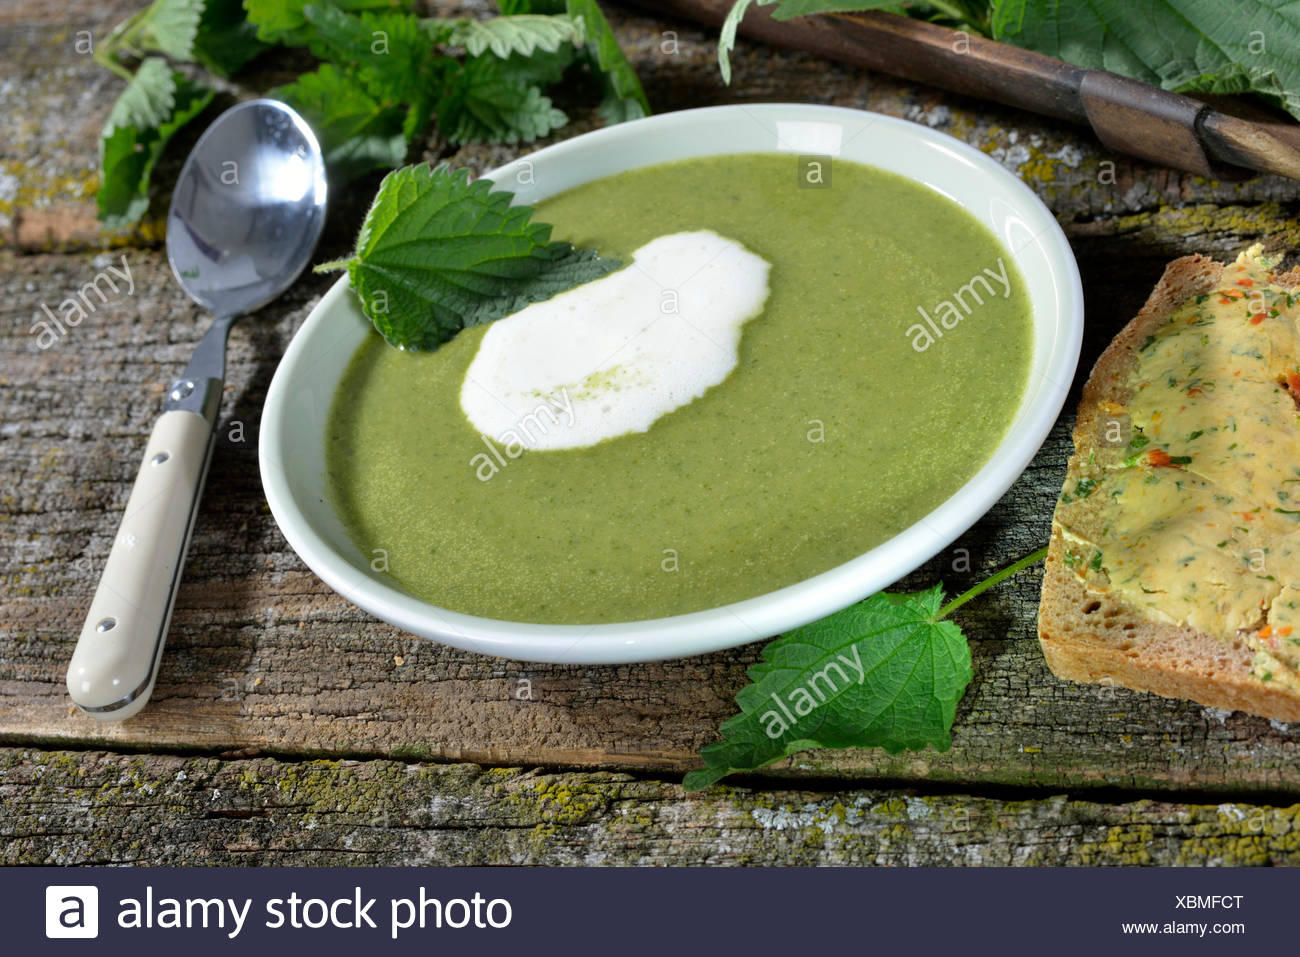 Soupe d'ortie (Urtica dioica) / Photo Stock